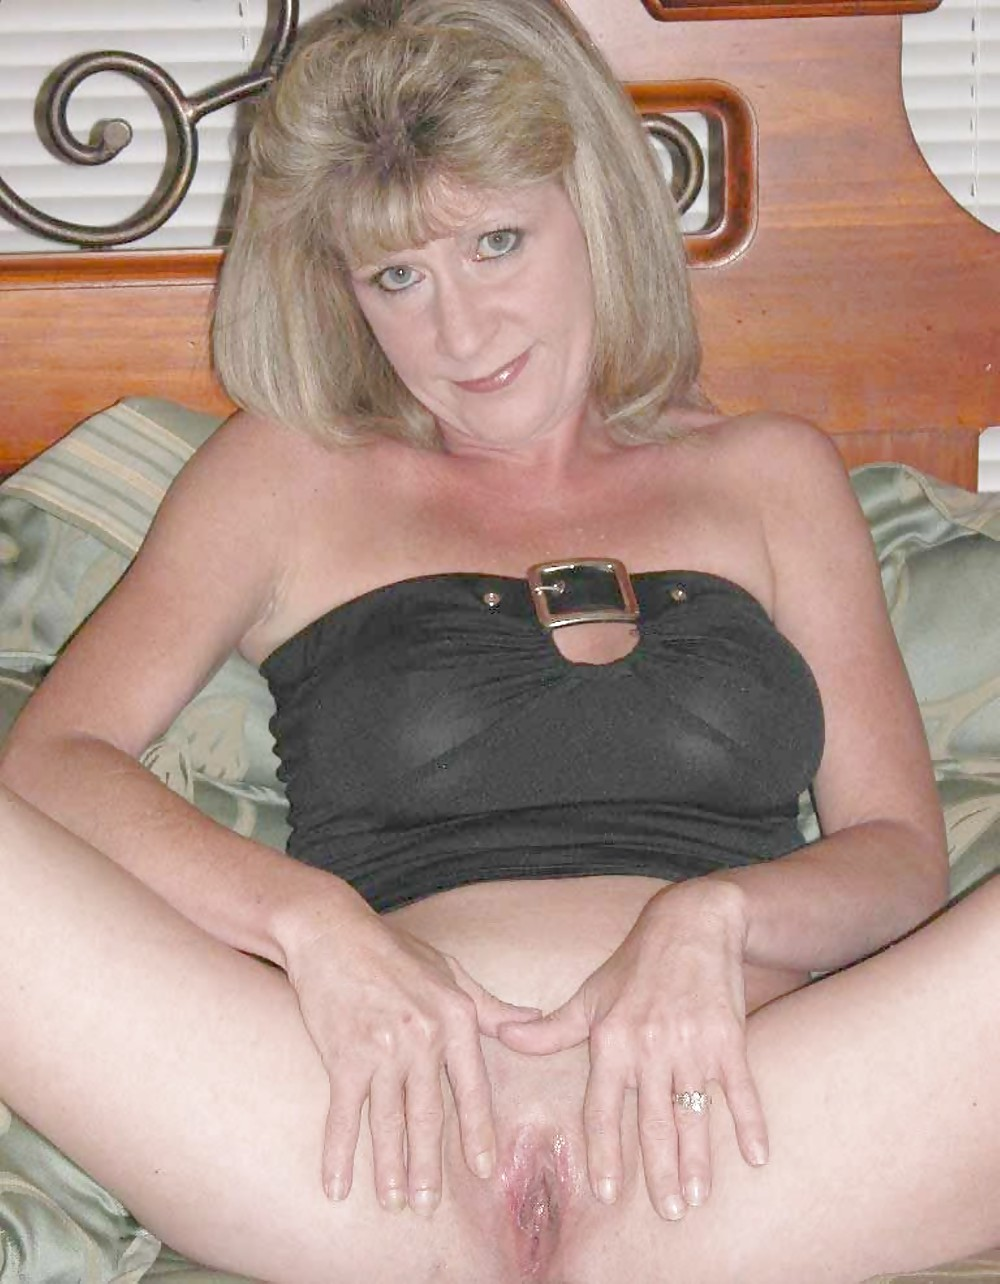 Beautiful Bottomless Babes 2 (Amateur Milfs) by TROC Porn Pics #10102501